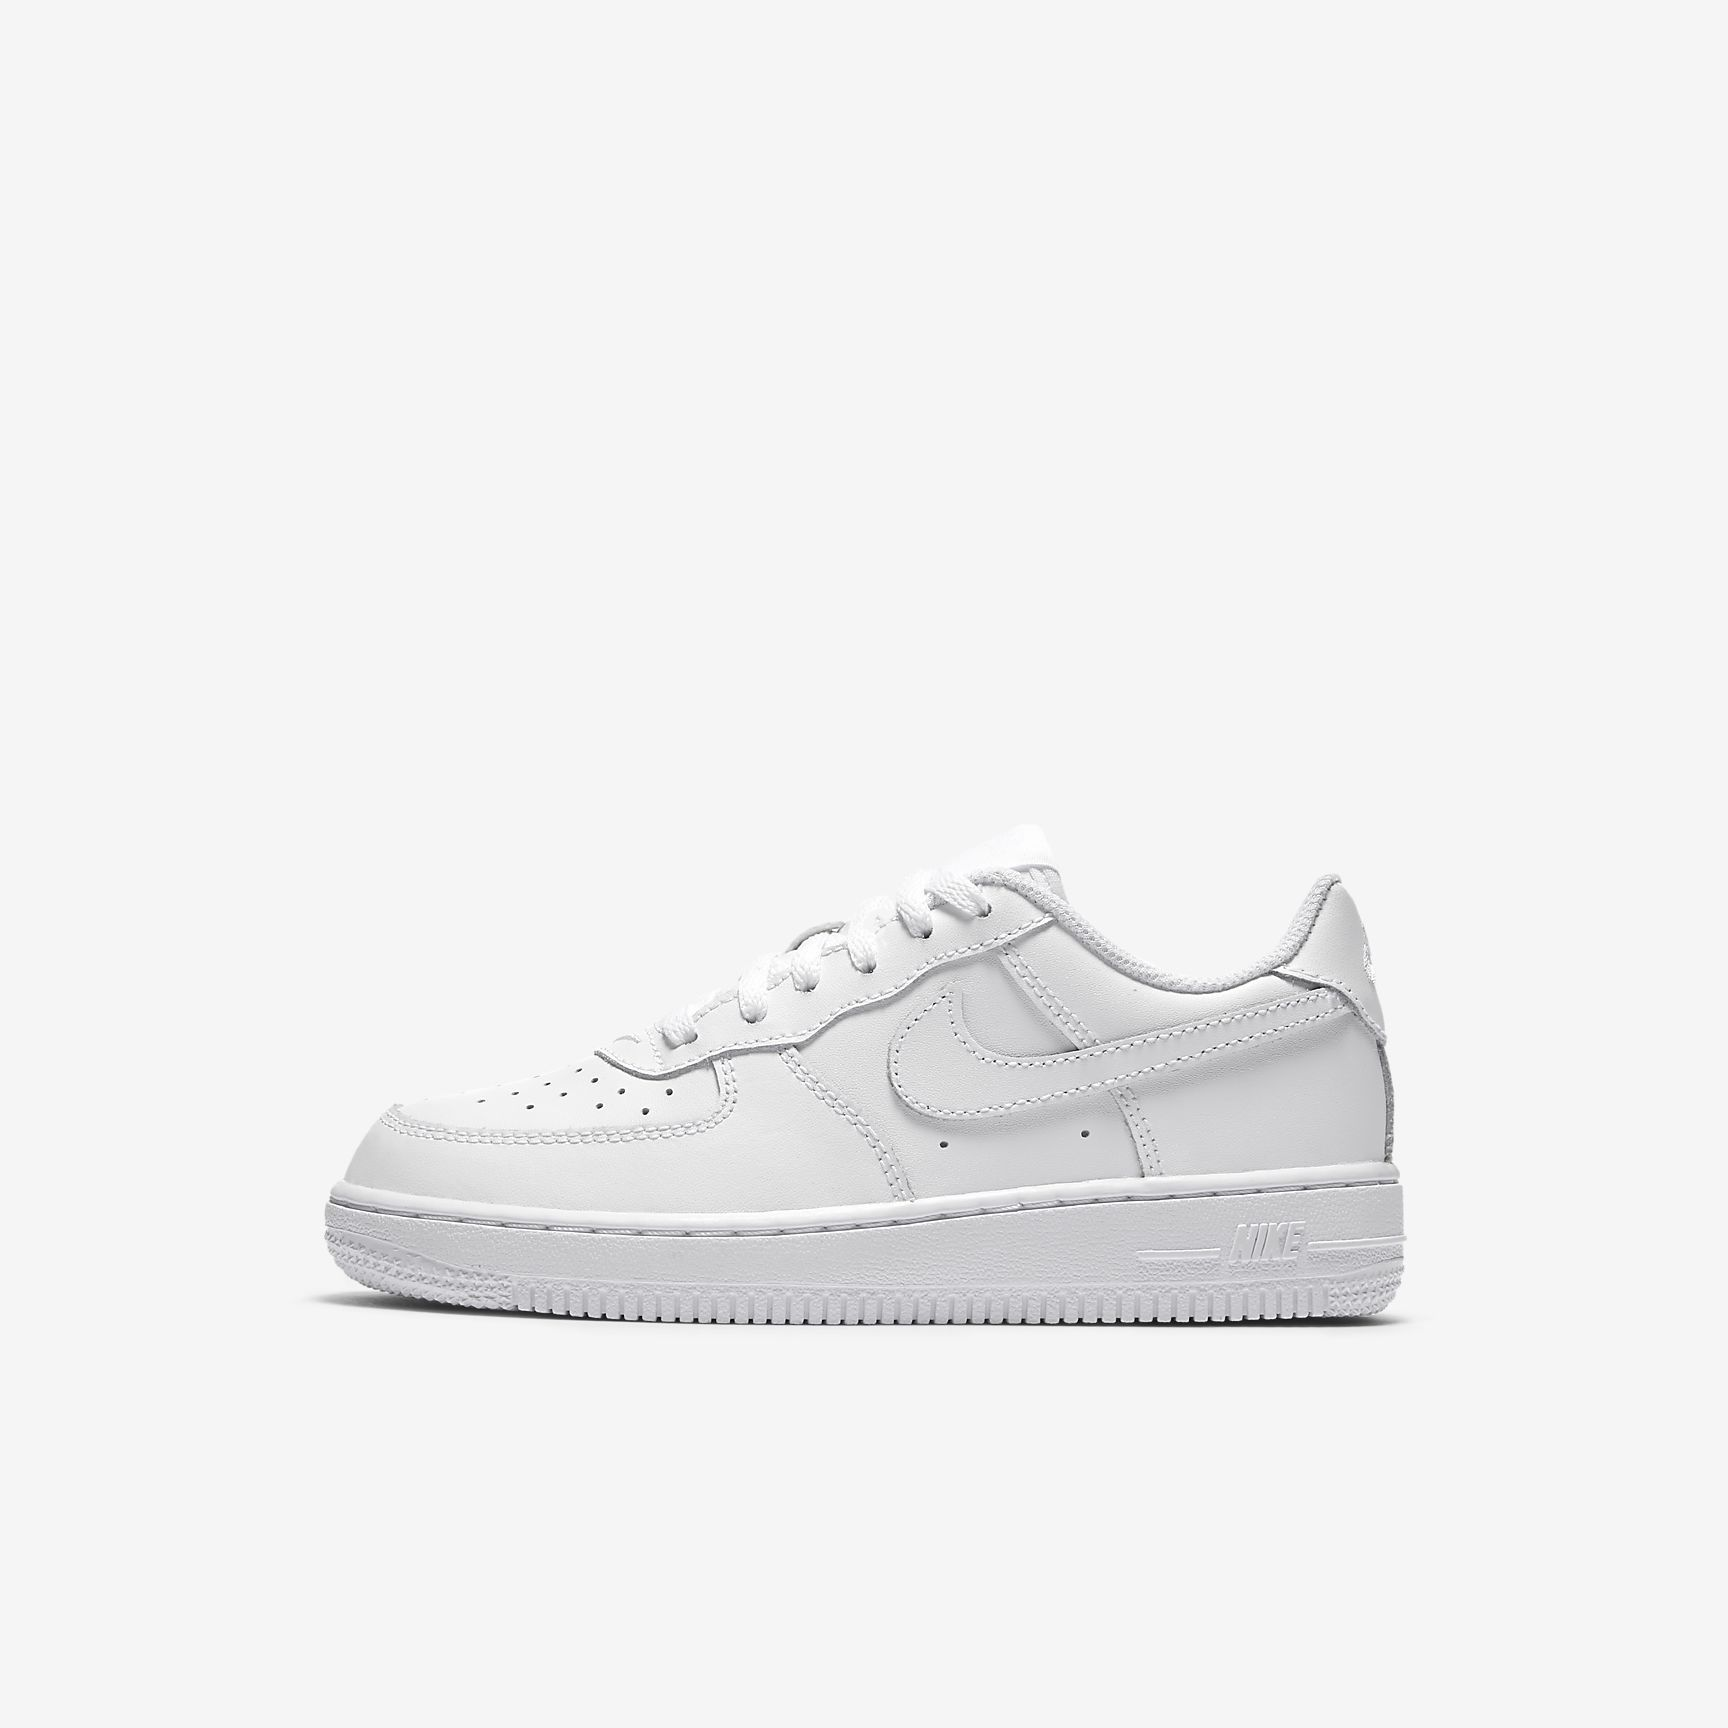 e6d914af684 Force 1 Little Kids' Shoe | kick$ | Nike air force, Nike force 1 ...